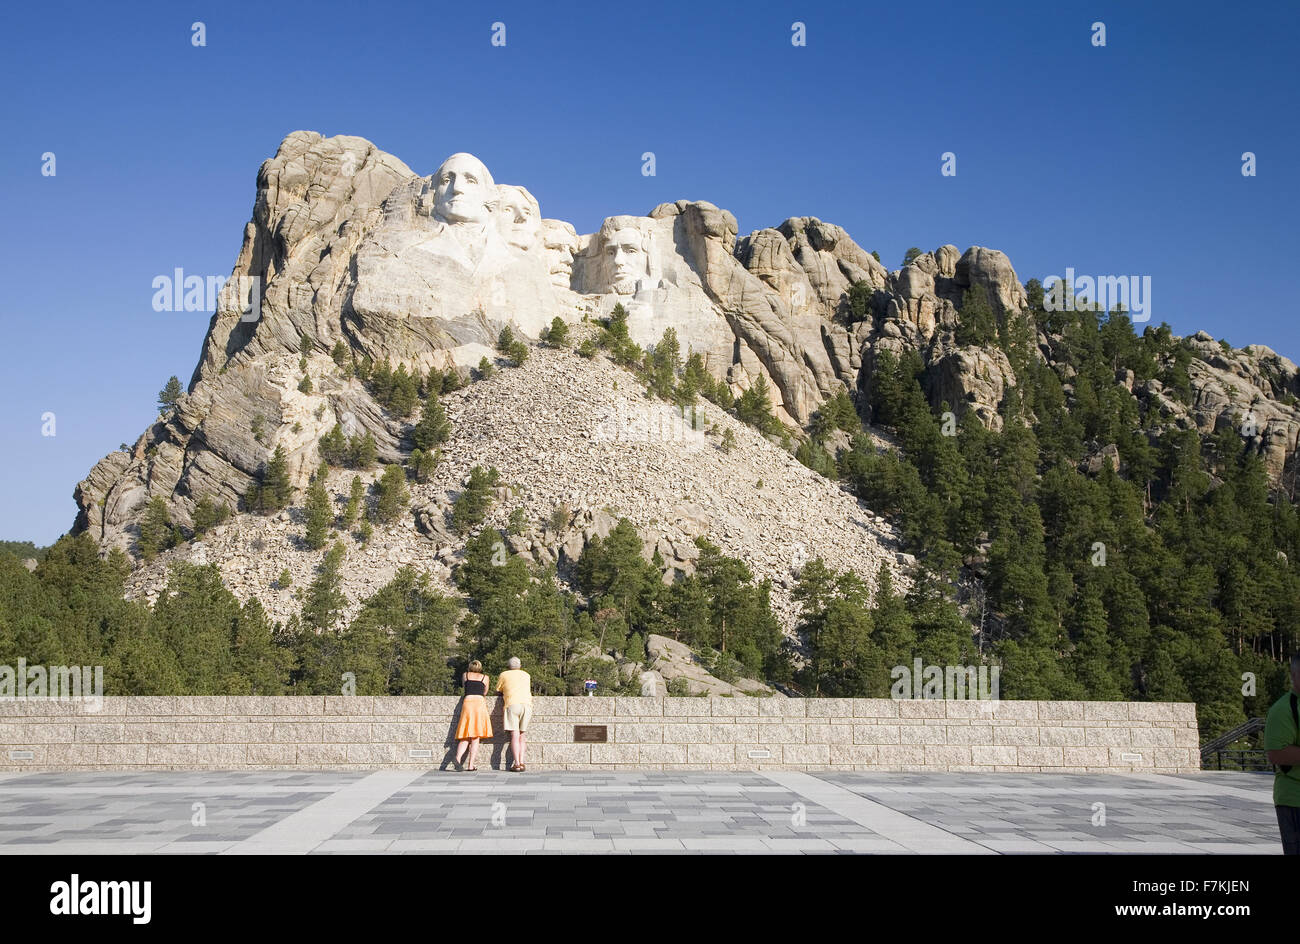 A man and woman at the Grand Terrace view of Mount Rushmore National Memorial, South Dakota Stock Photo